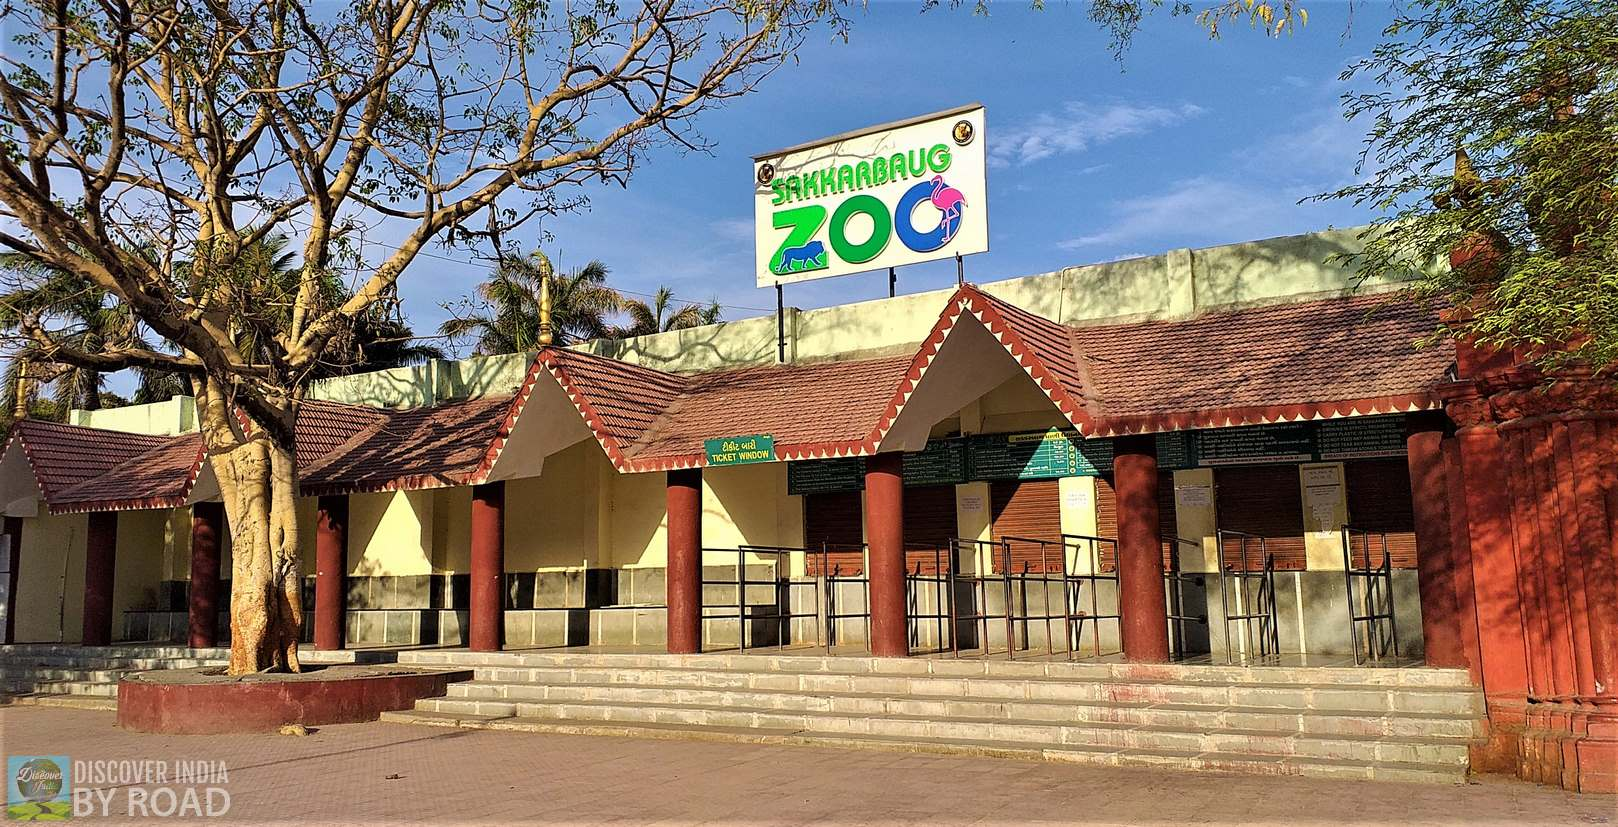 Sakkarbaug Zoo Ticket counter